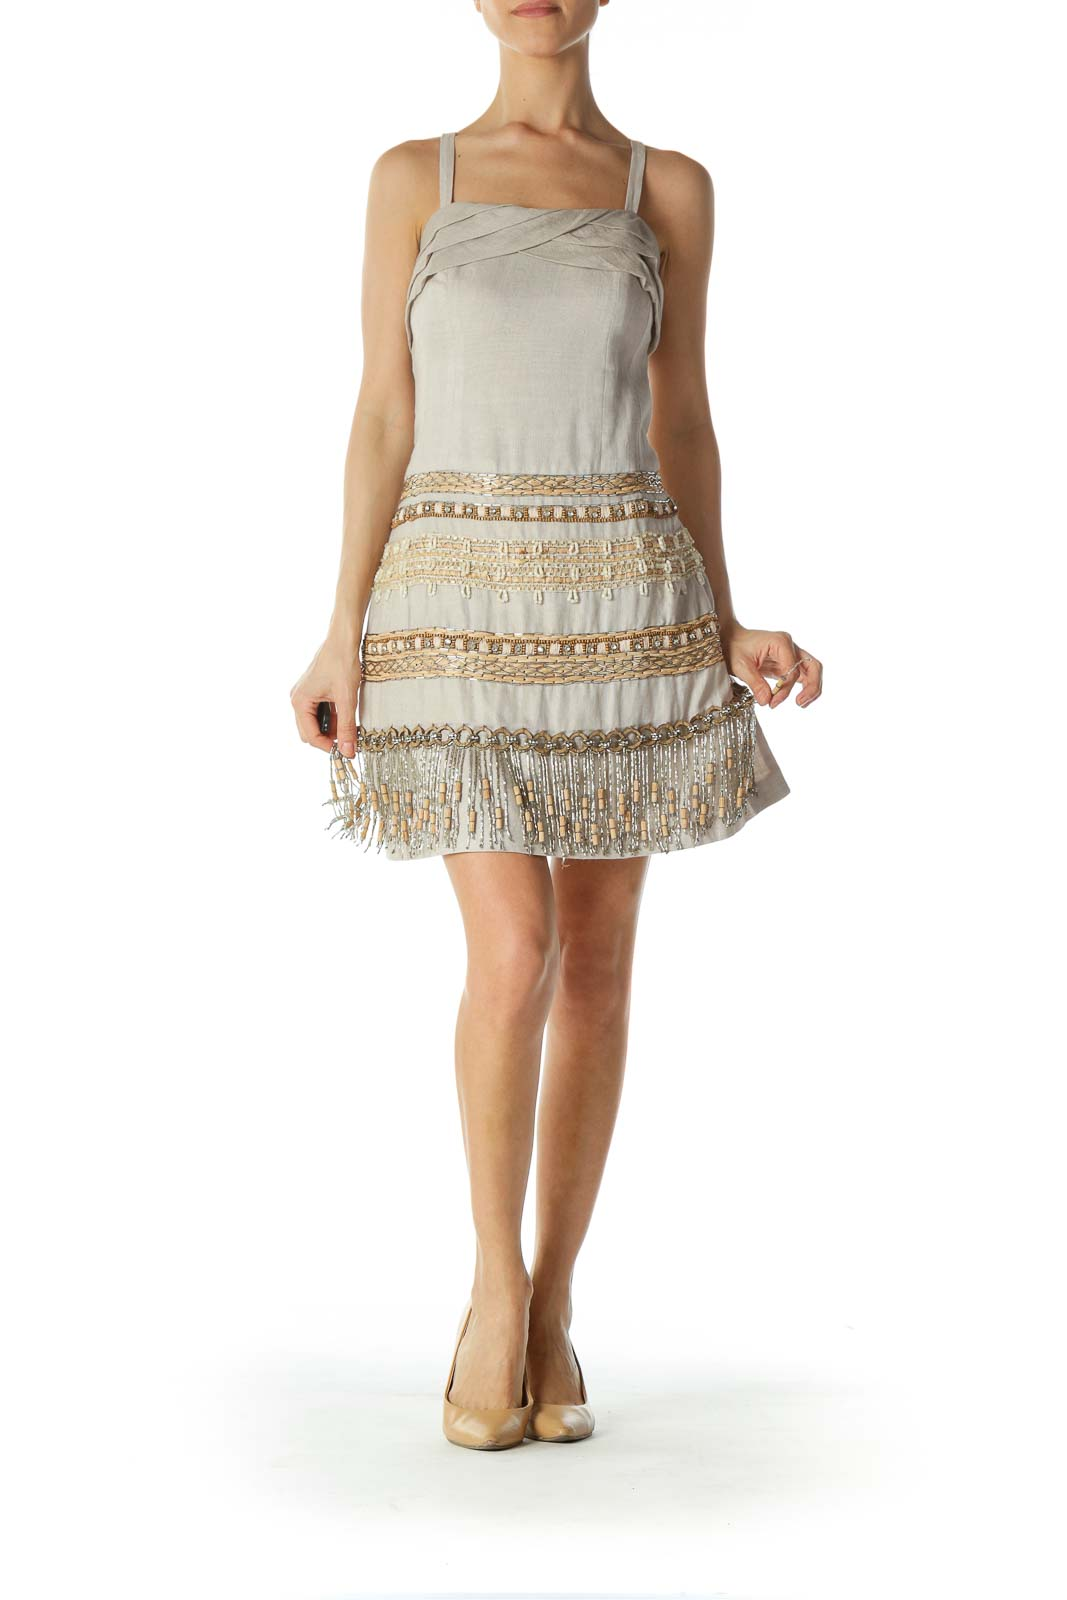 Beige Bejeweled and Tasseled Cocktail Dress